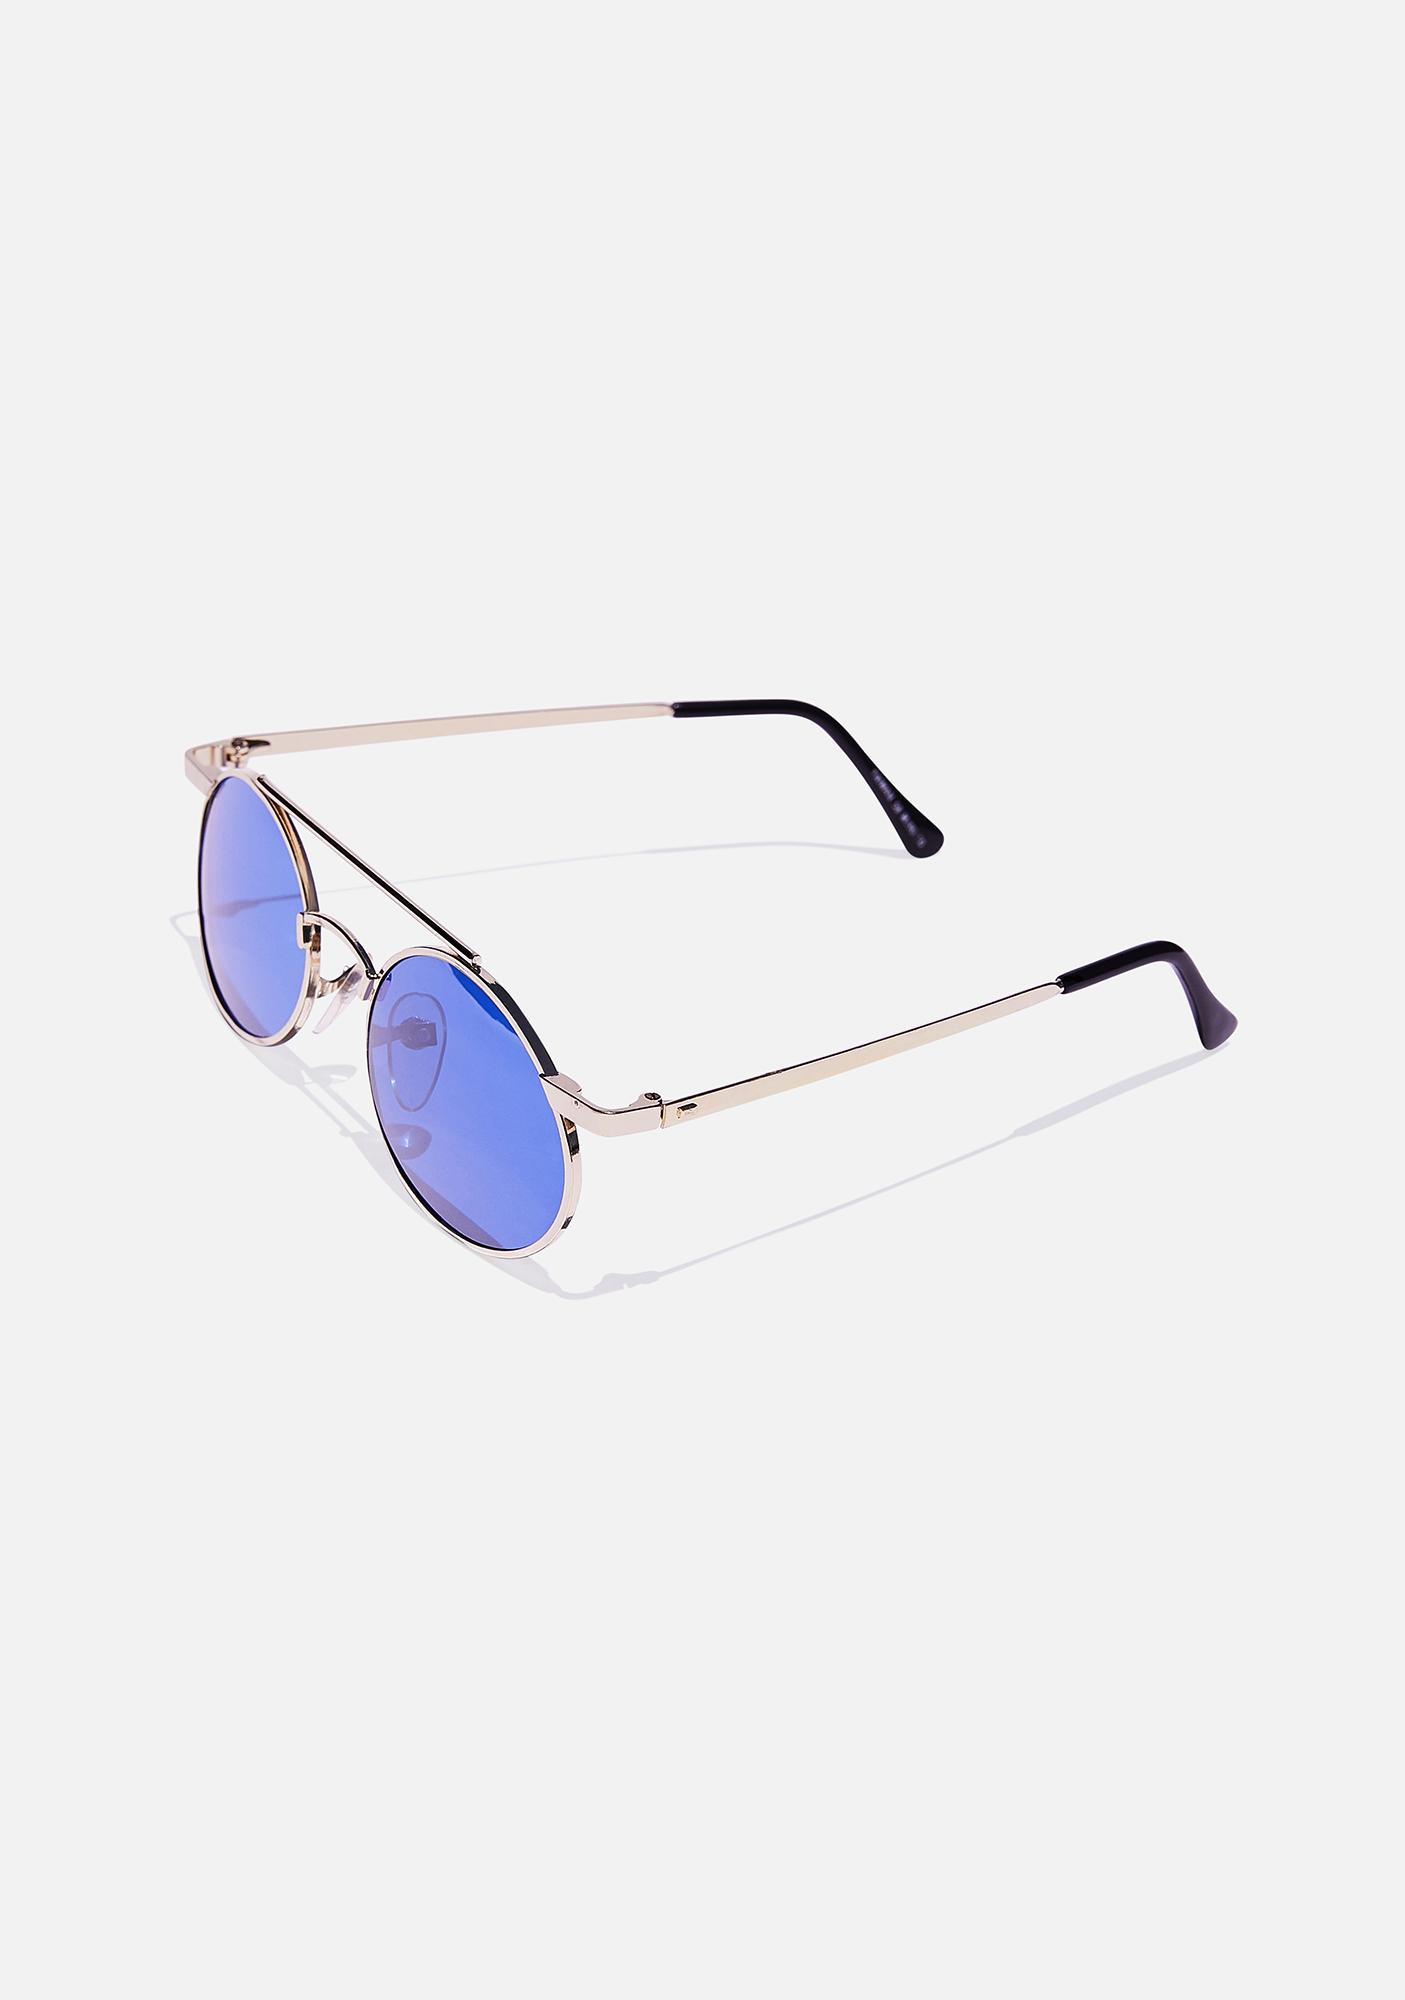 Good Times Eyewear Gold Zackly Aviator Sunglasses